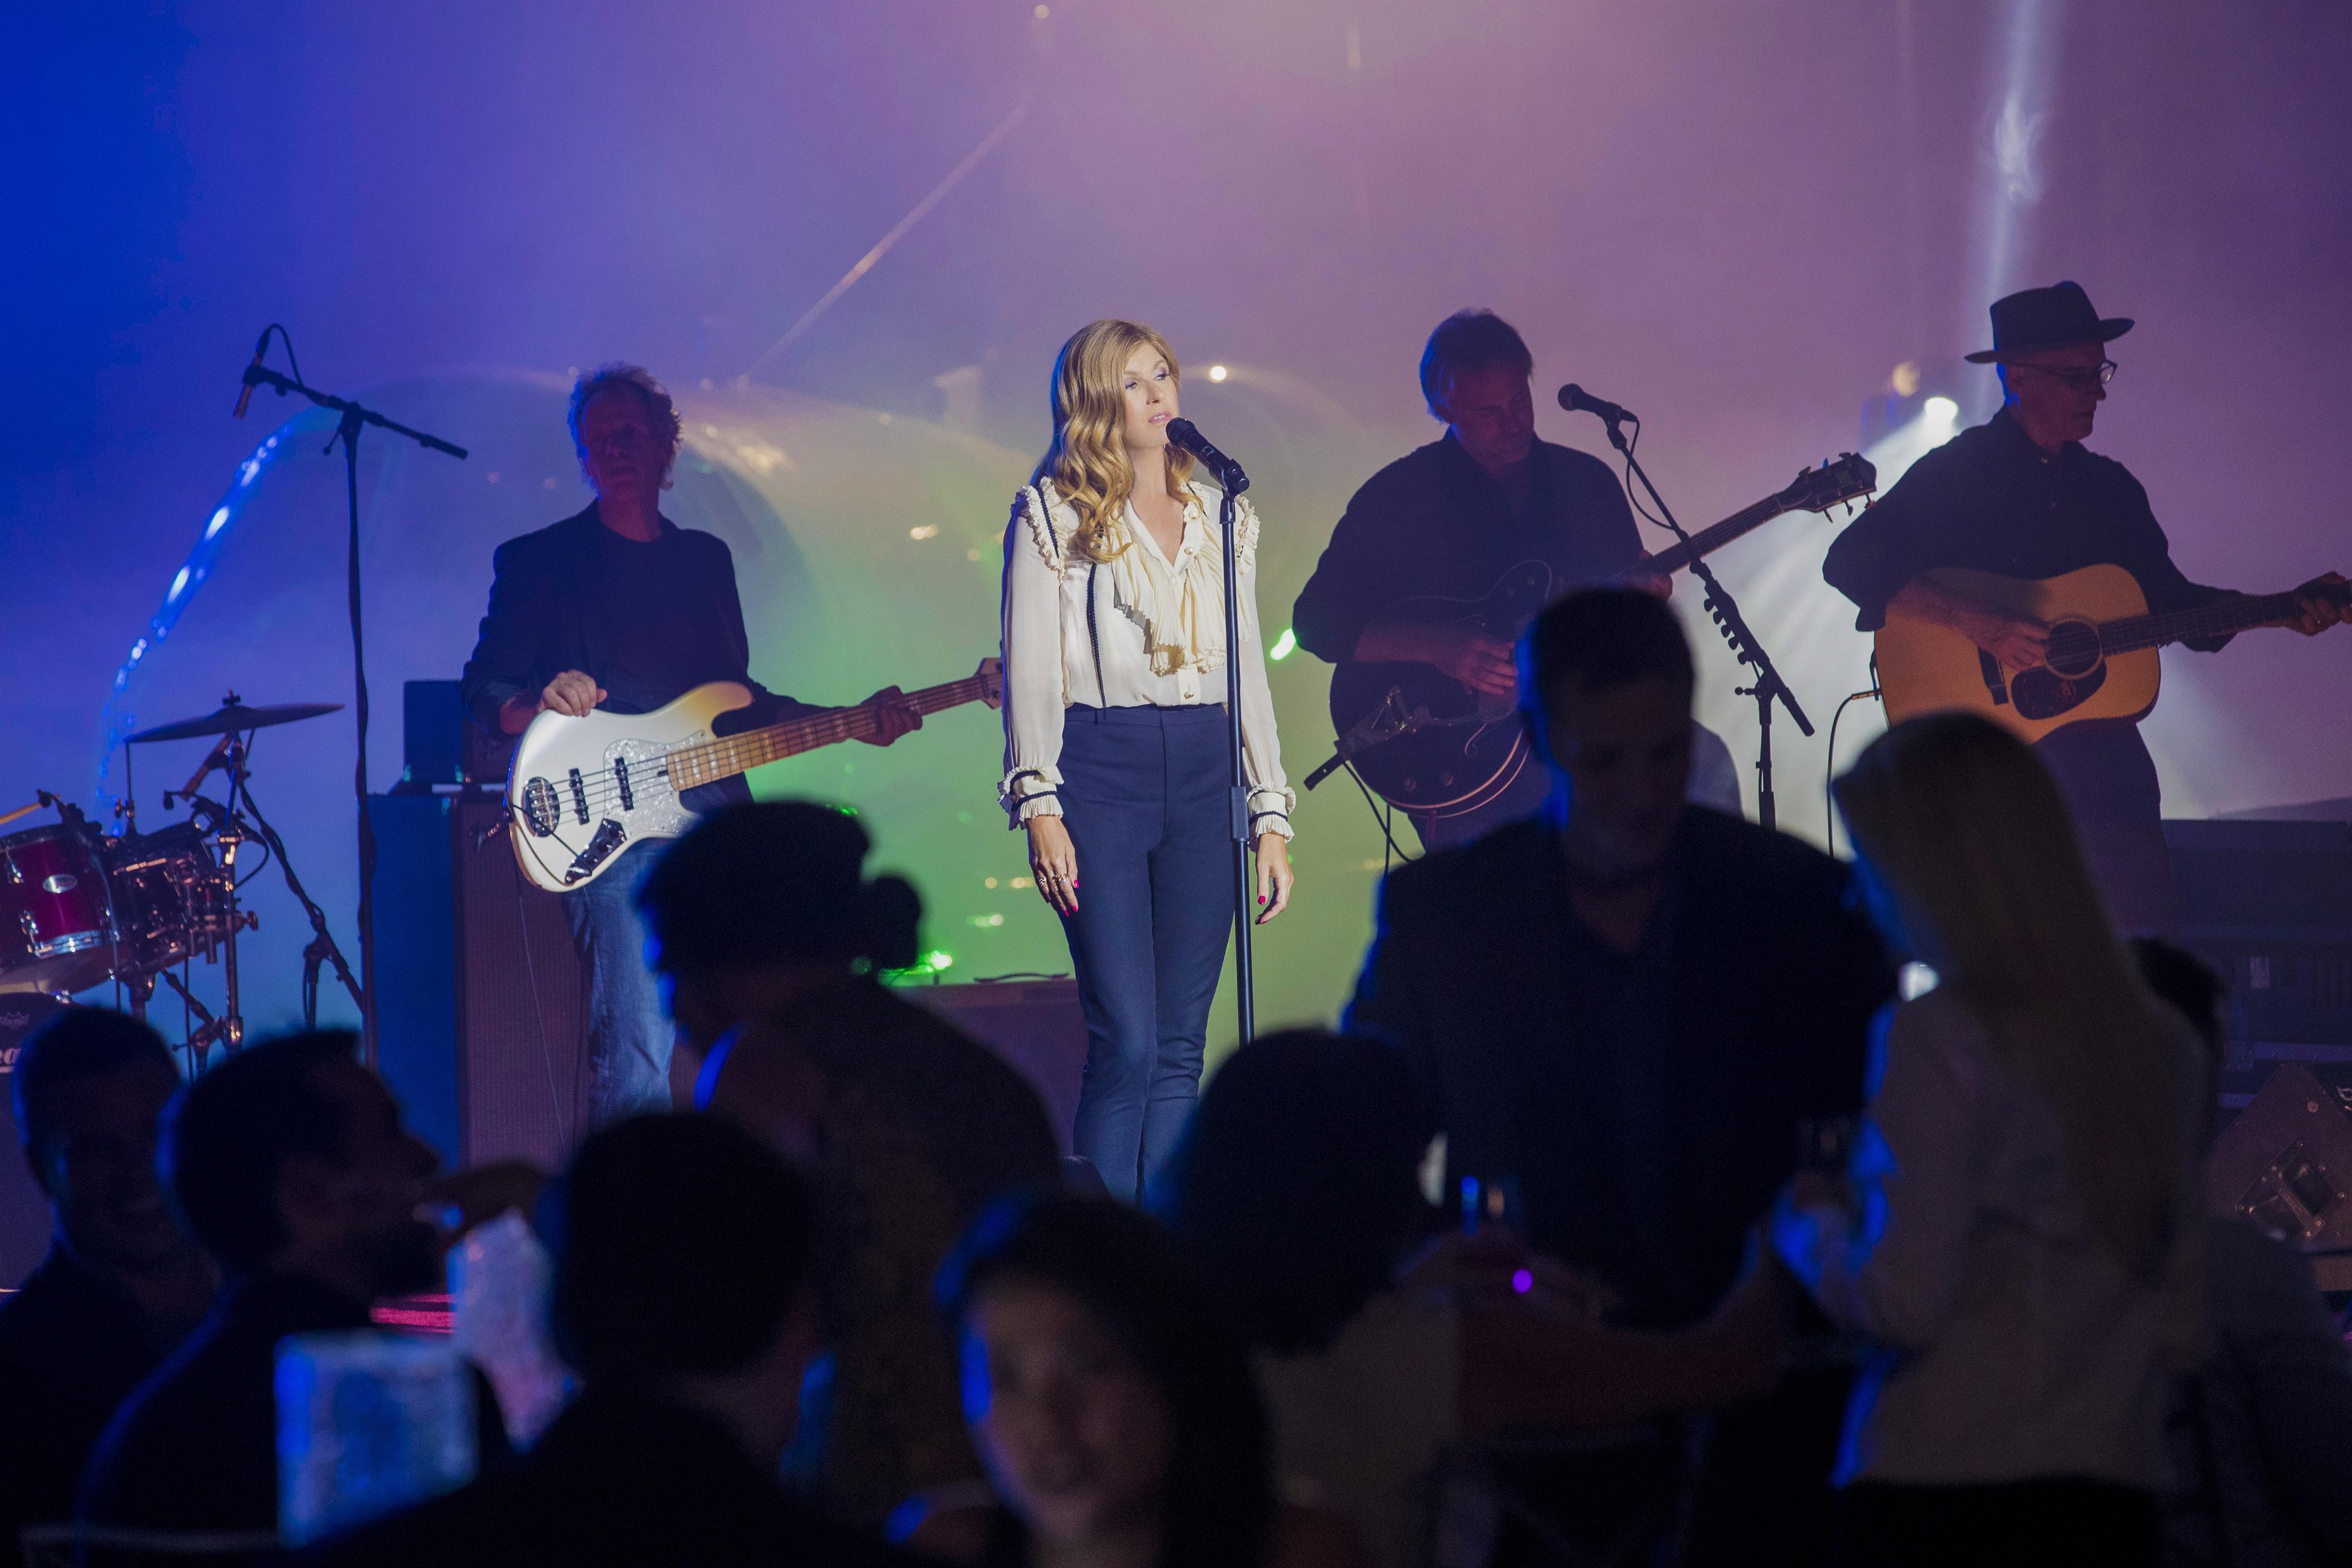 'Nashville' Sets Another Ratings Record For CMT